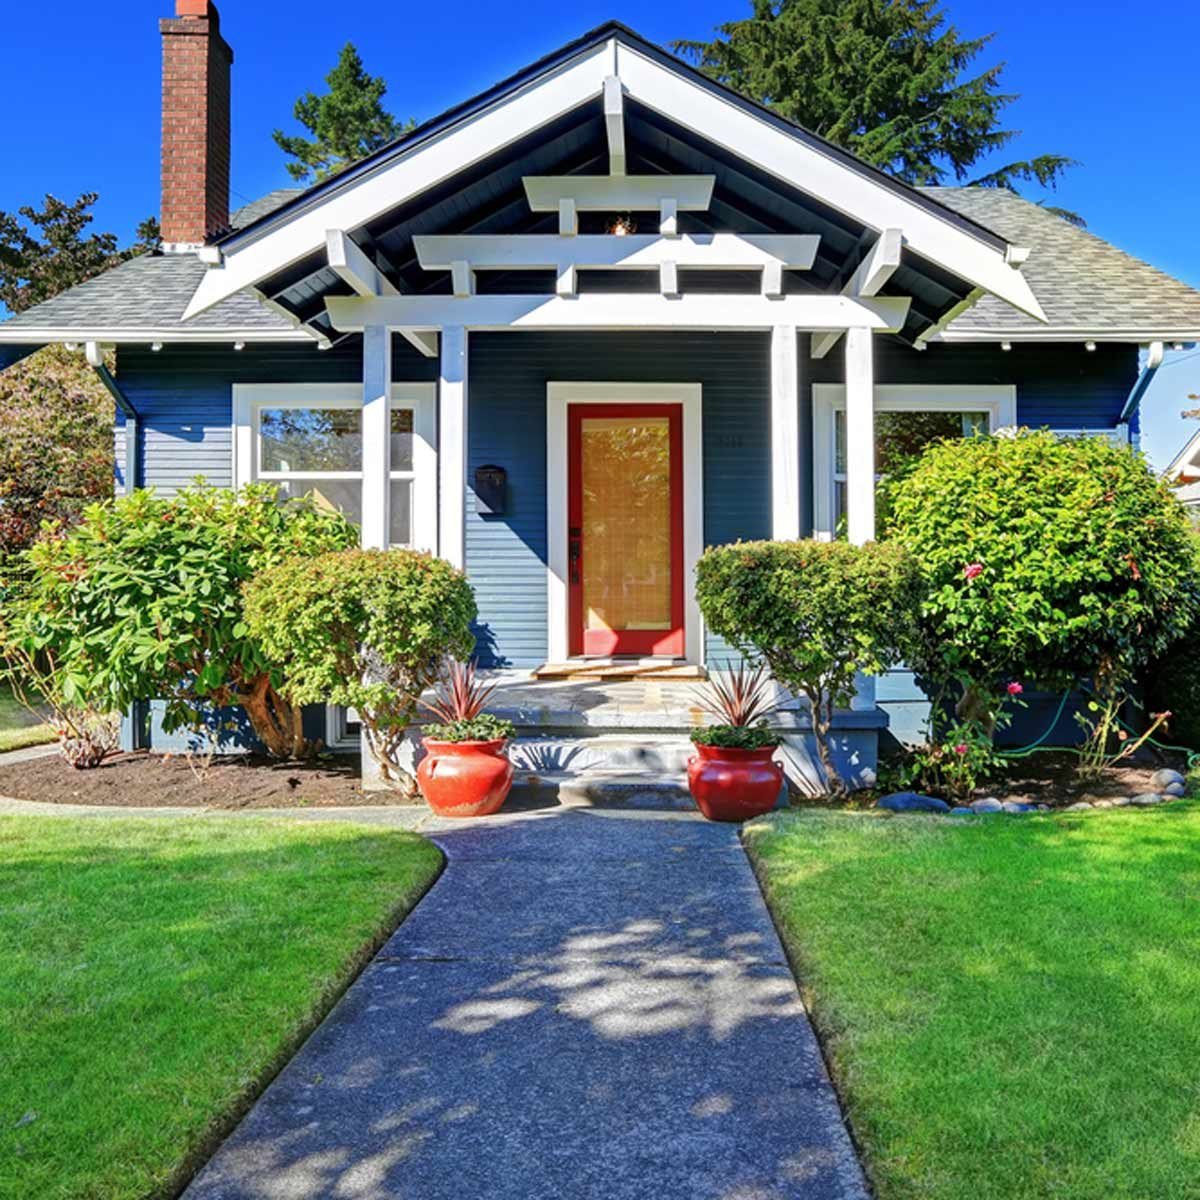 Don't Disregard Curb Appeal